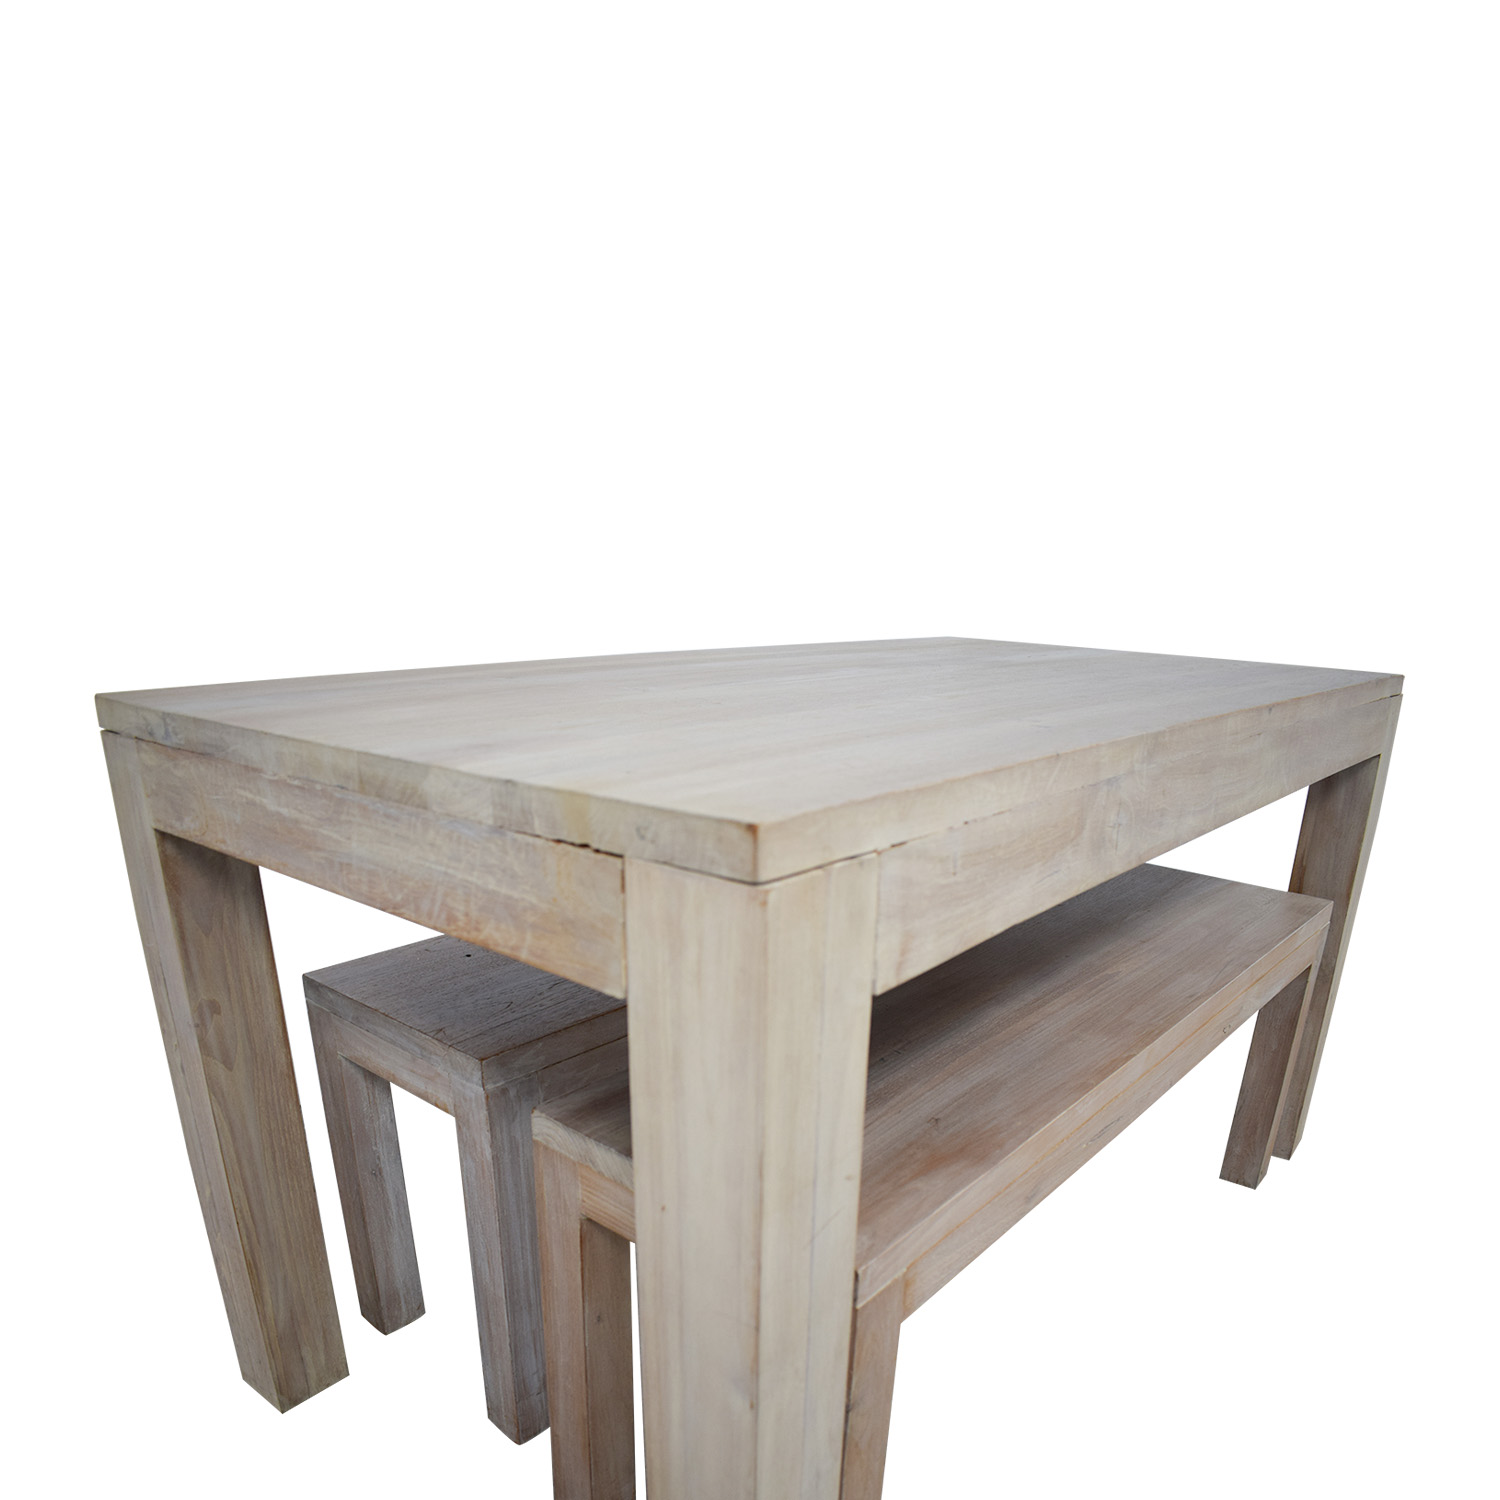 TREE Hong Kong TREE Hong Kong Reclaimed Raw Oak Wood Dining Table with Benches Dining Sets